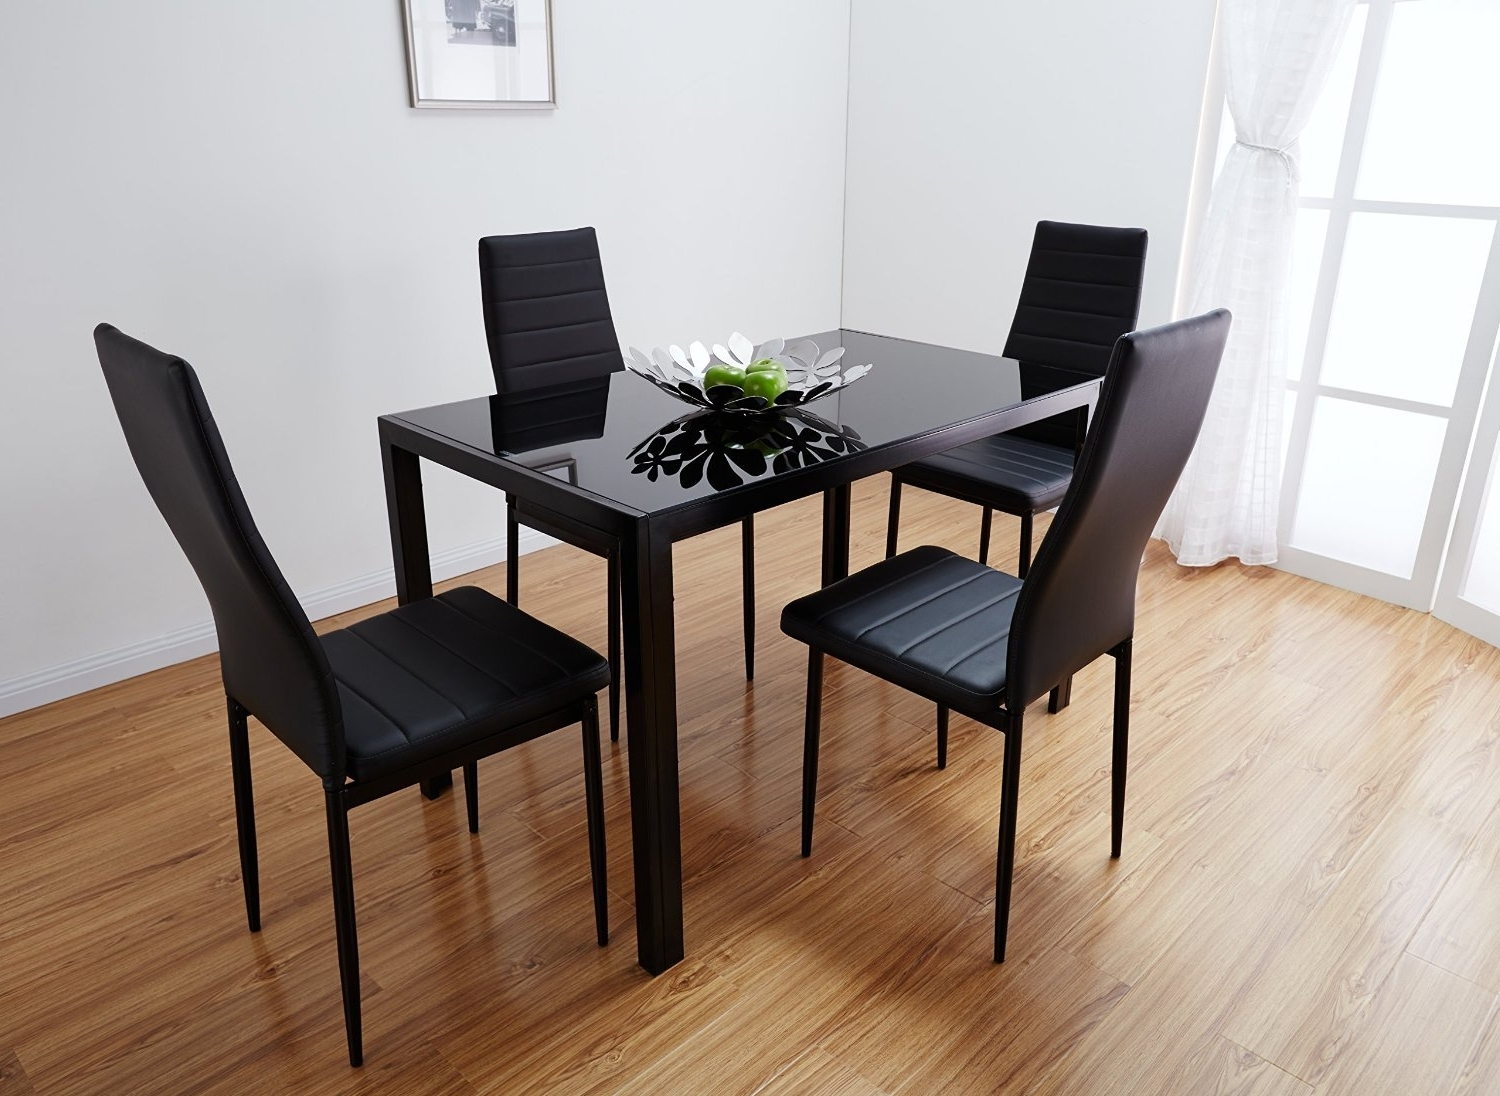 Round Black Glass Dining Tables And Chairs With Regard To Current Dining Room Round Glass Dining Table With Chairs Dining Room Chairs (View 11 of 25)